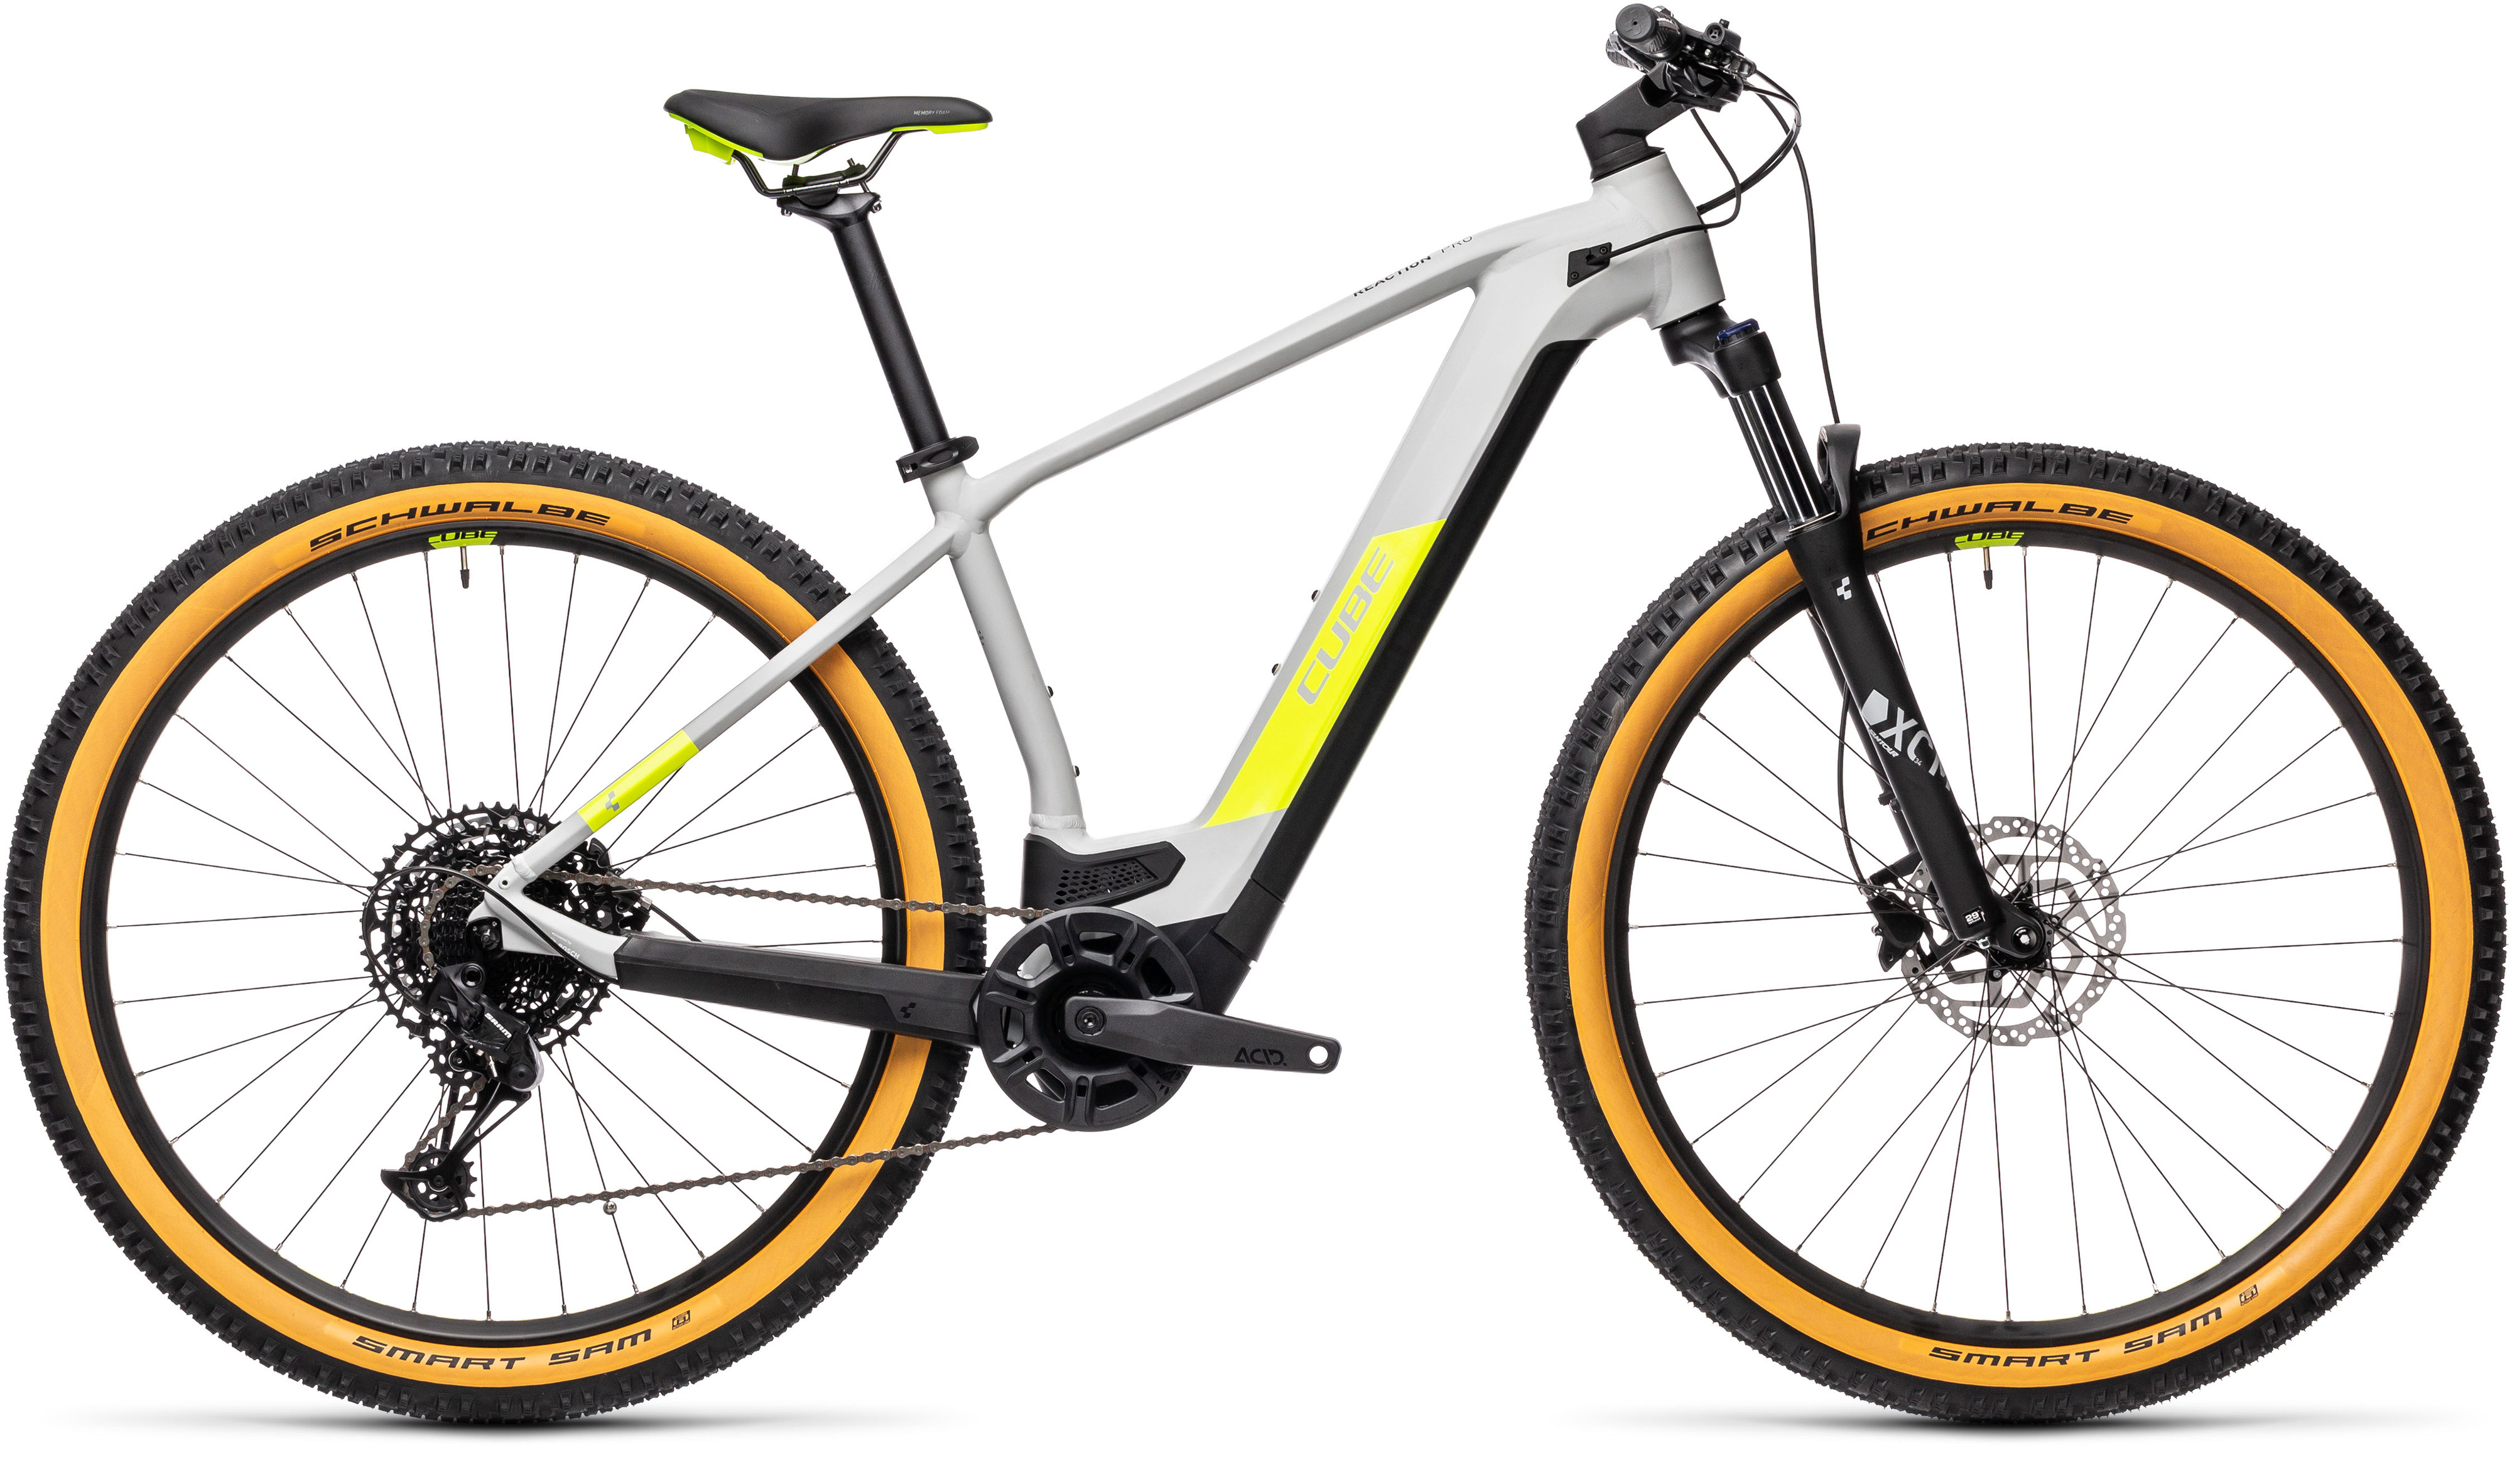 Cube Reaction Hybrid Pro 625 Allroad 29 (2021)